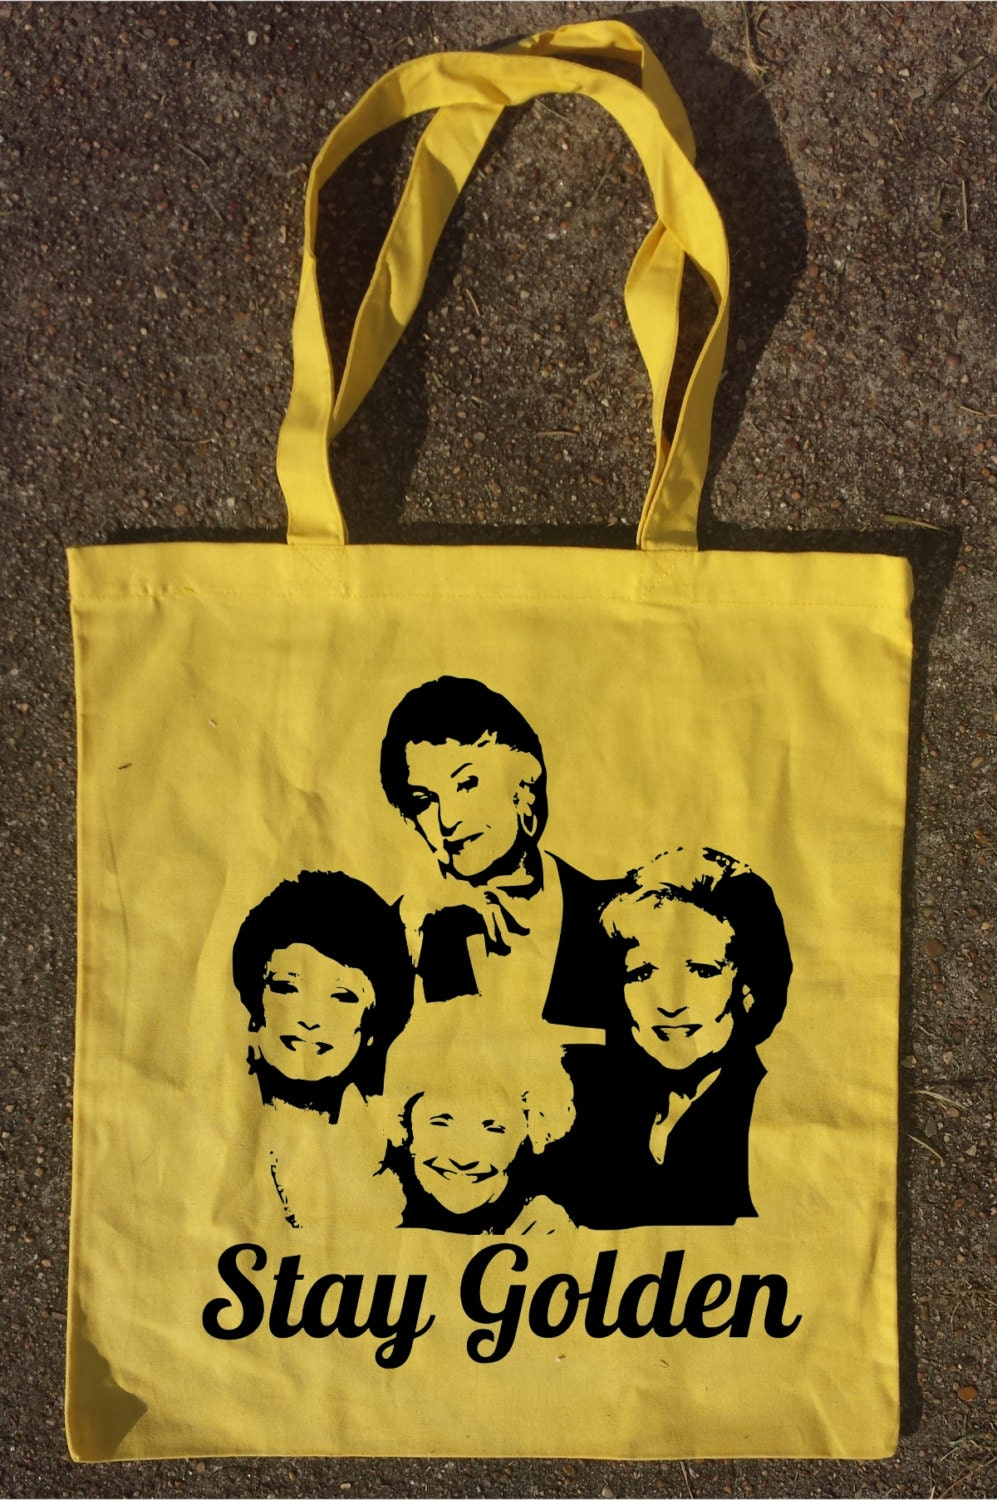 Stay Golden Golden Girls Handbag Tote Tv Show